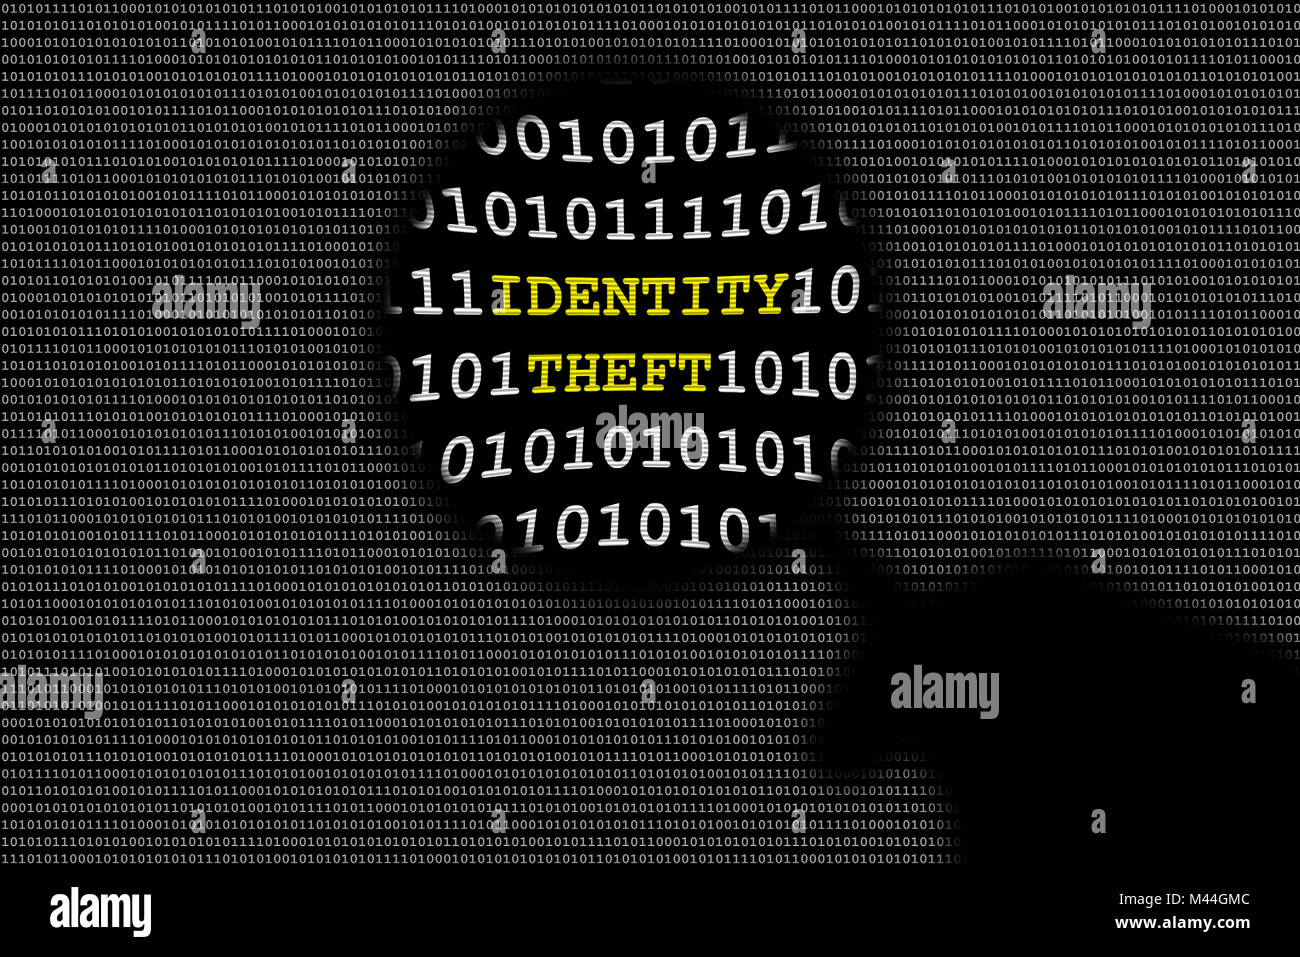 Shadow of hand holding magnifying lens over binary code and identity theft text - Stock Image